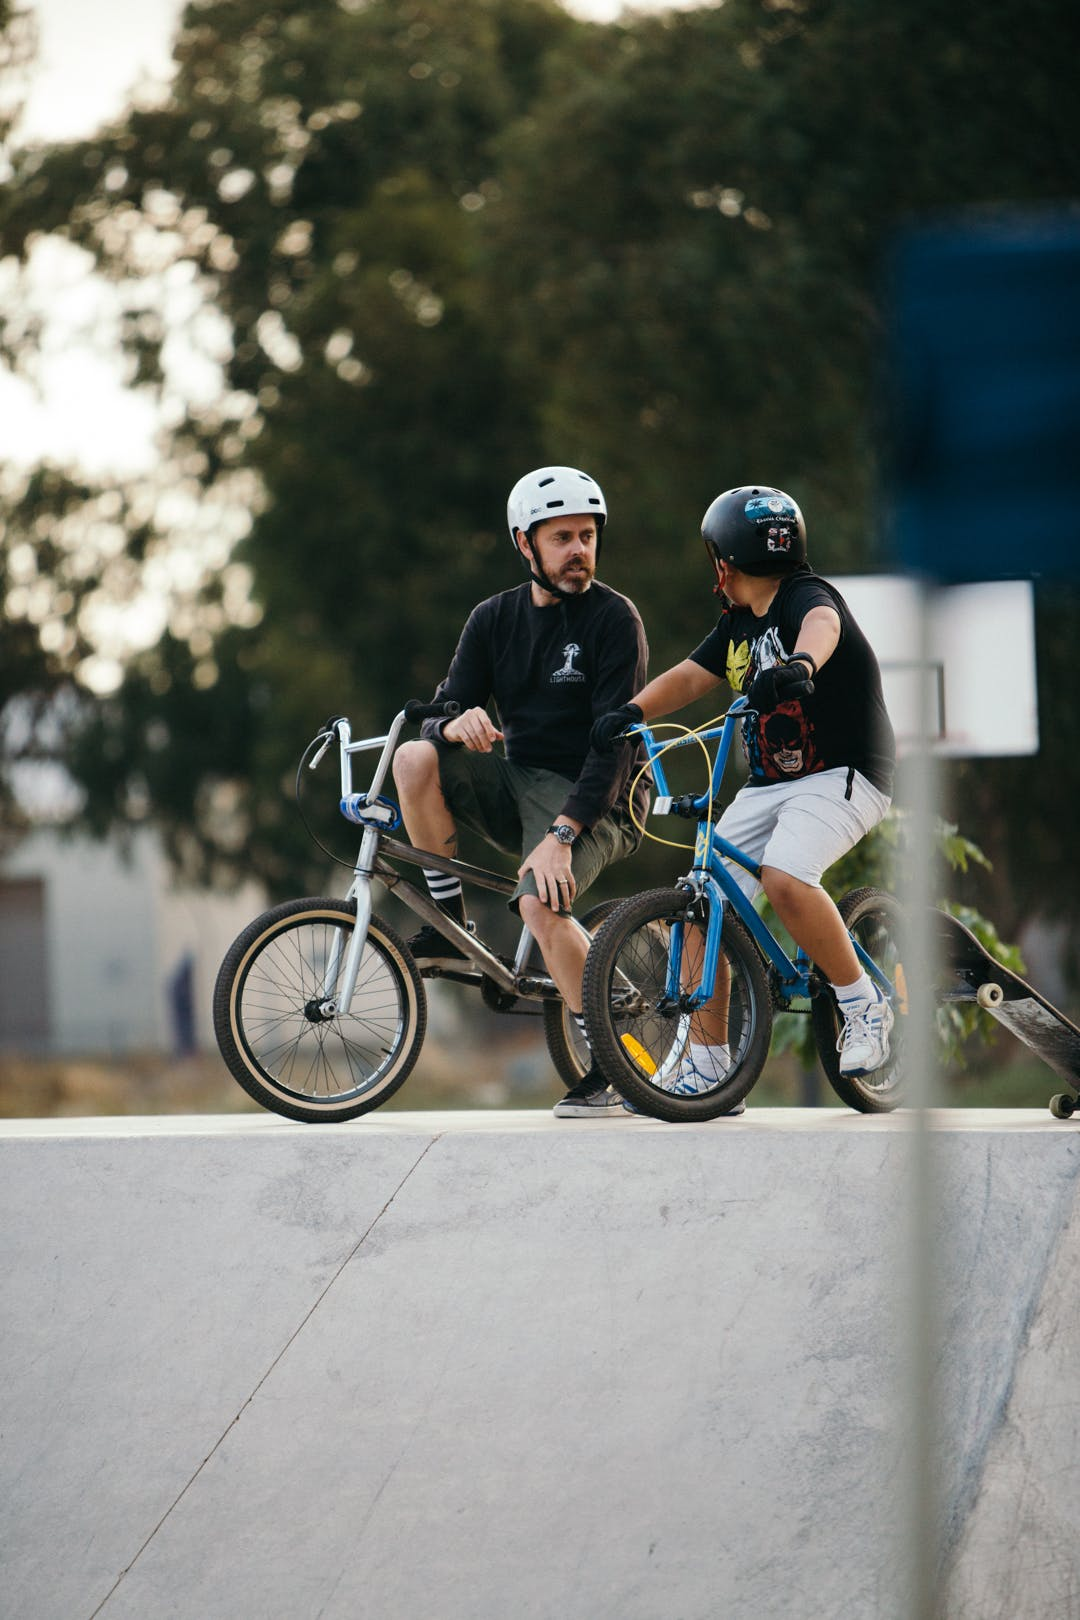 Concrete Sessions funded by City of Marion Youth Development Grants and Partnerships